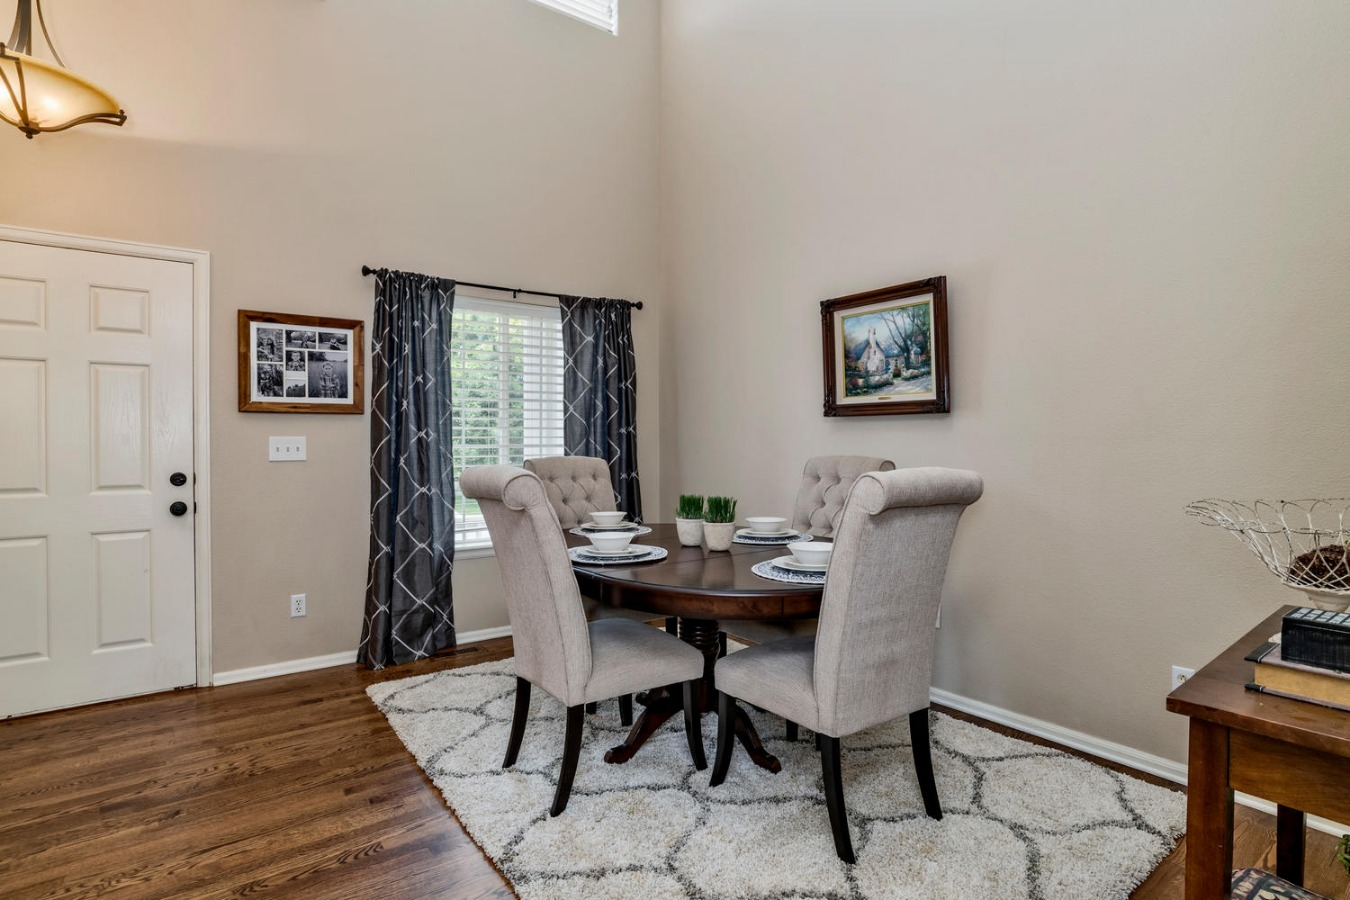 Dining Room or Living Room - It's Your Choice